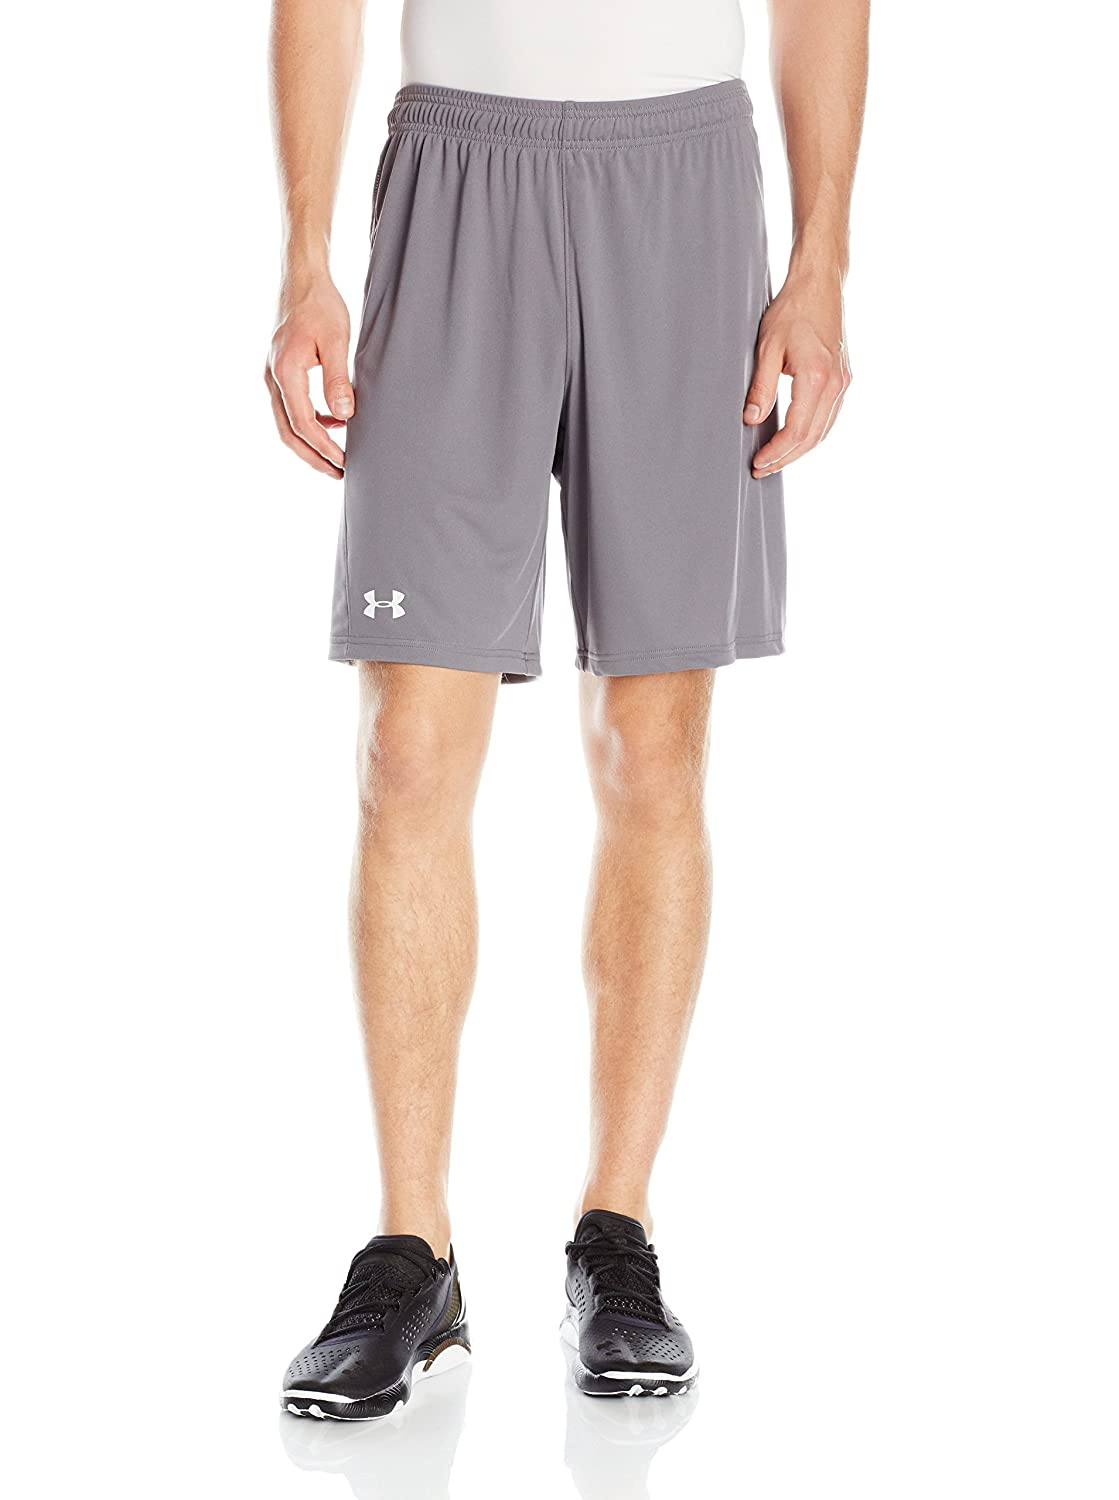 Under Armour Men/'s Challenger Knit Shorts 4 Colors